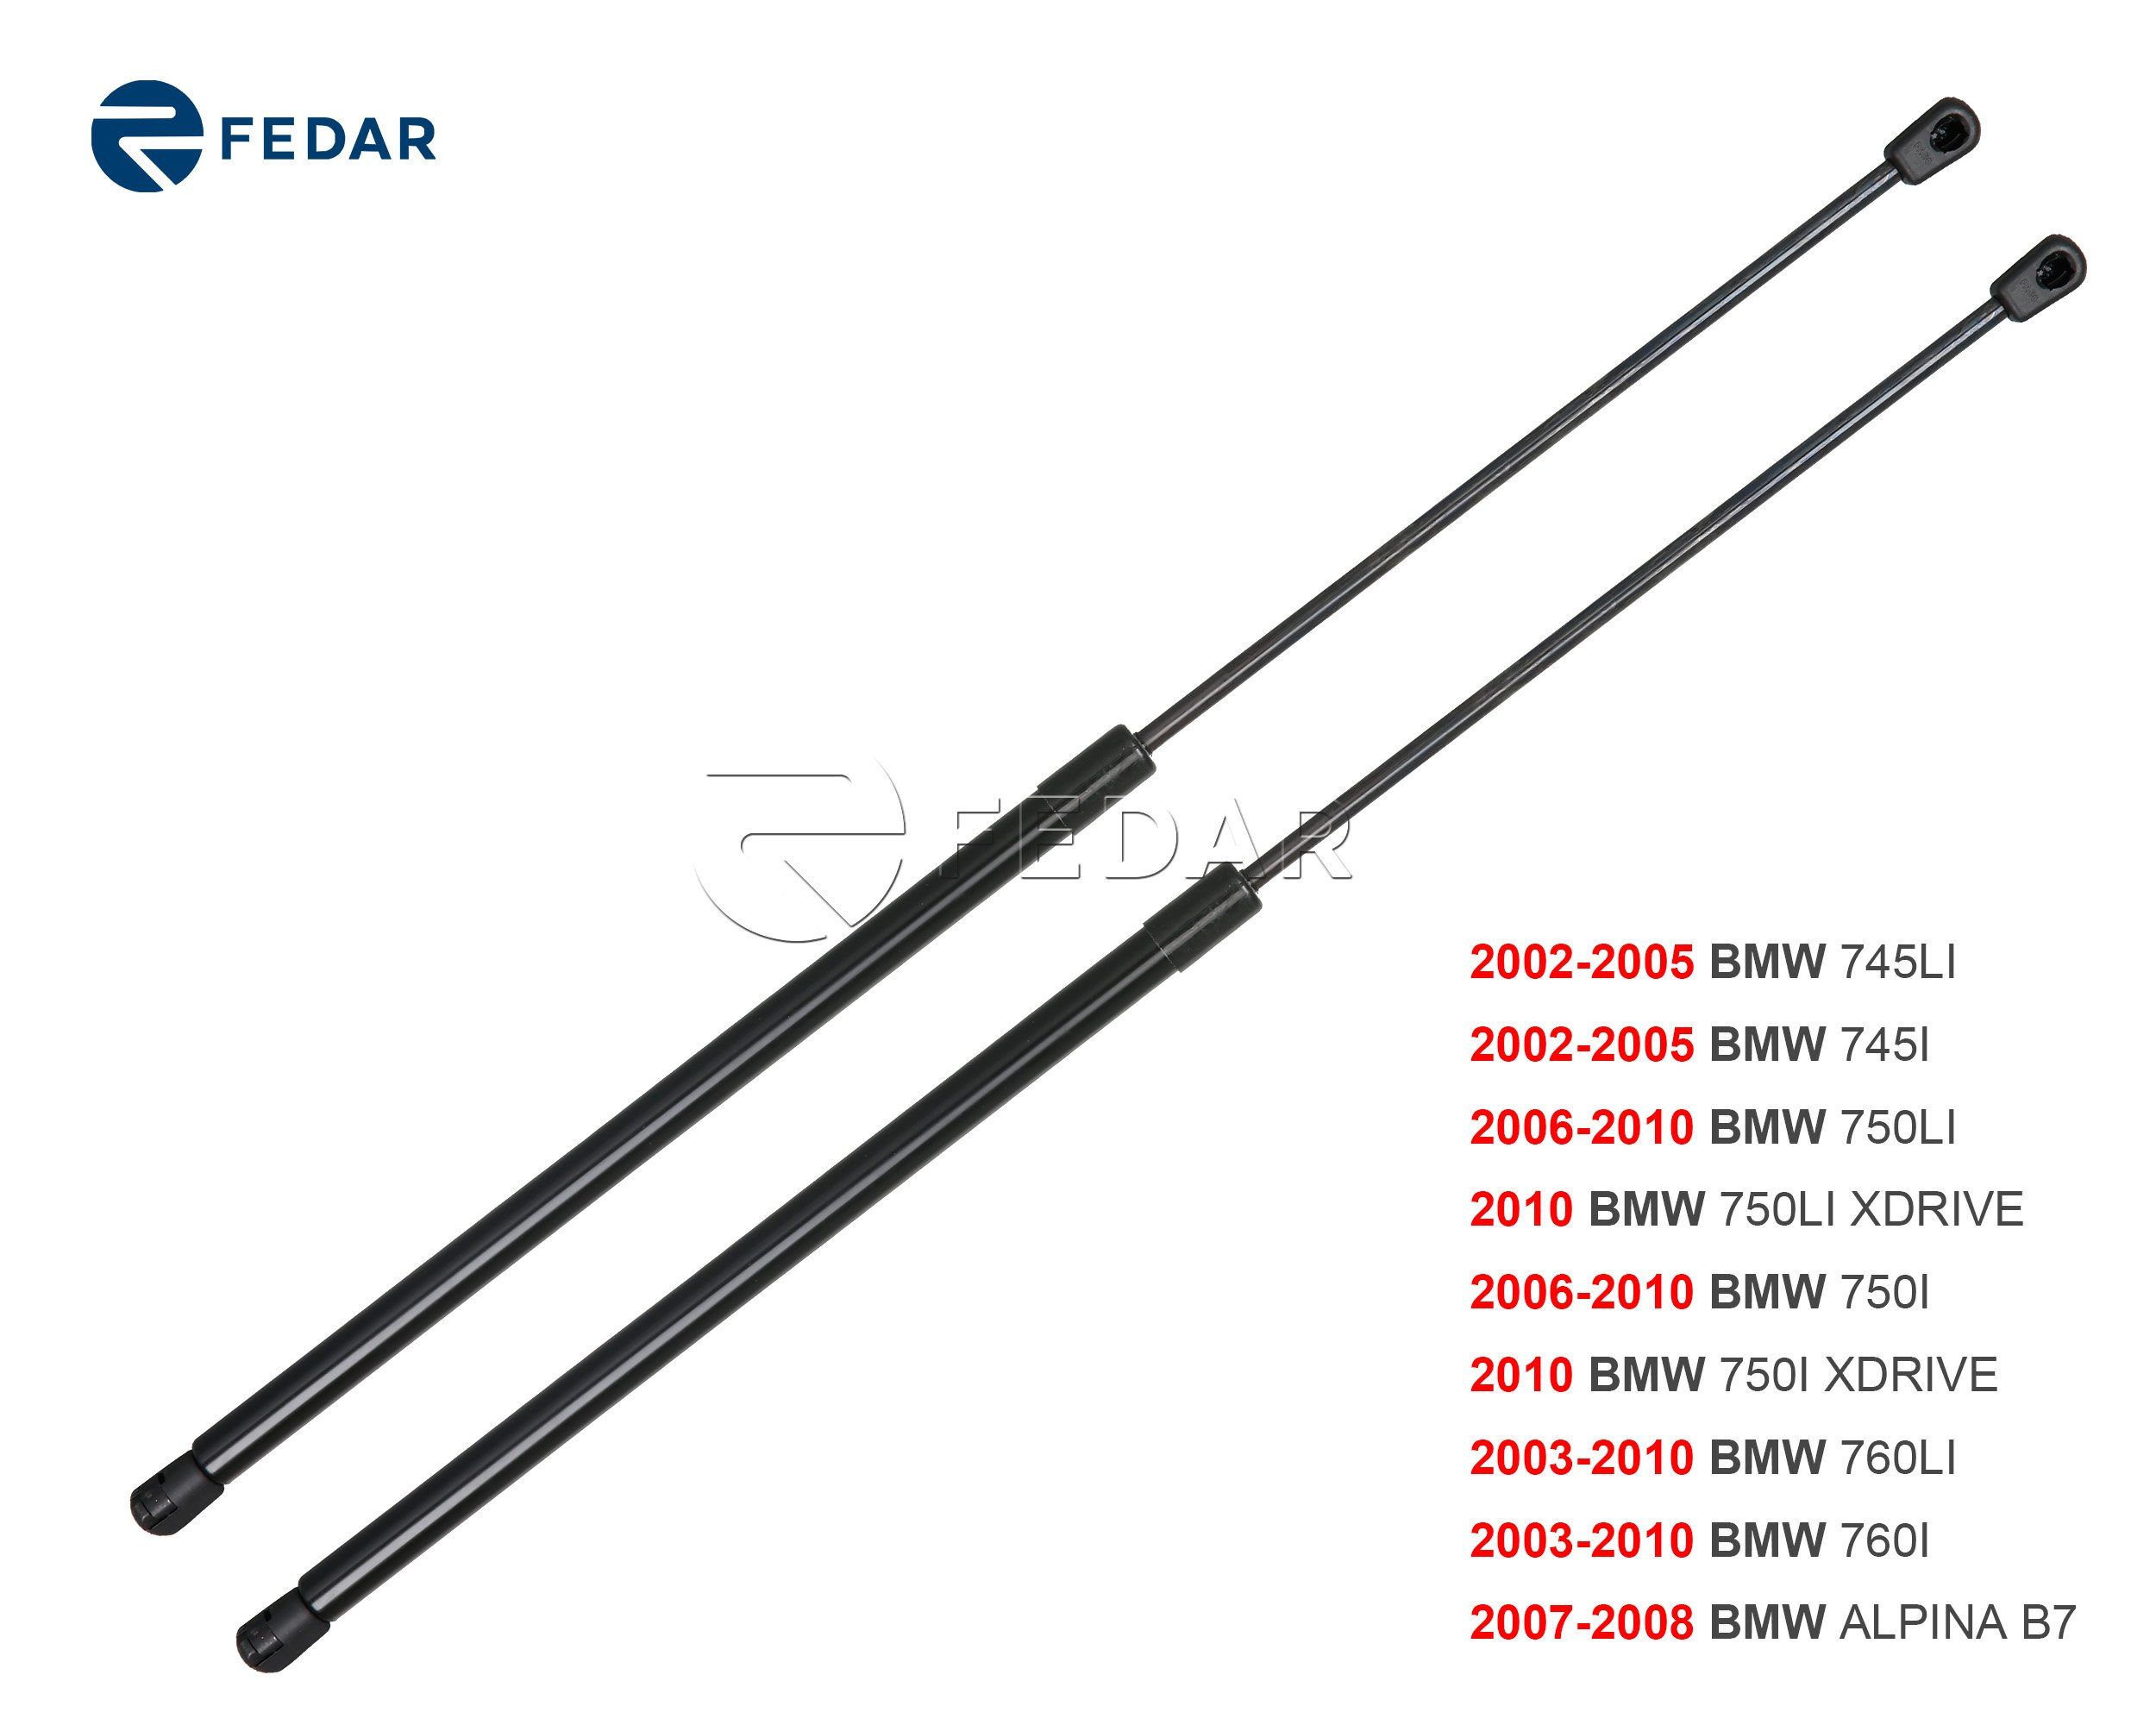 Fedar Front Hood Gas Charged Lift Support for 2002-2005 BMW 745/2006-2010 BMW 750/2003-2010 BMW 760